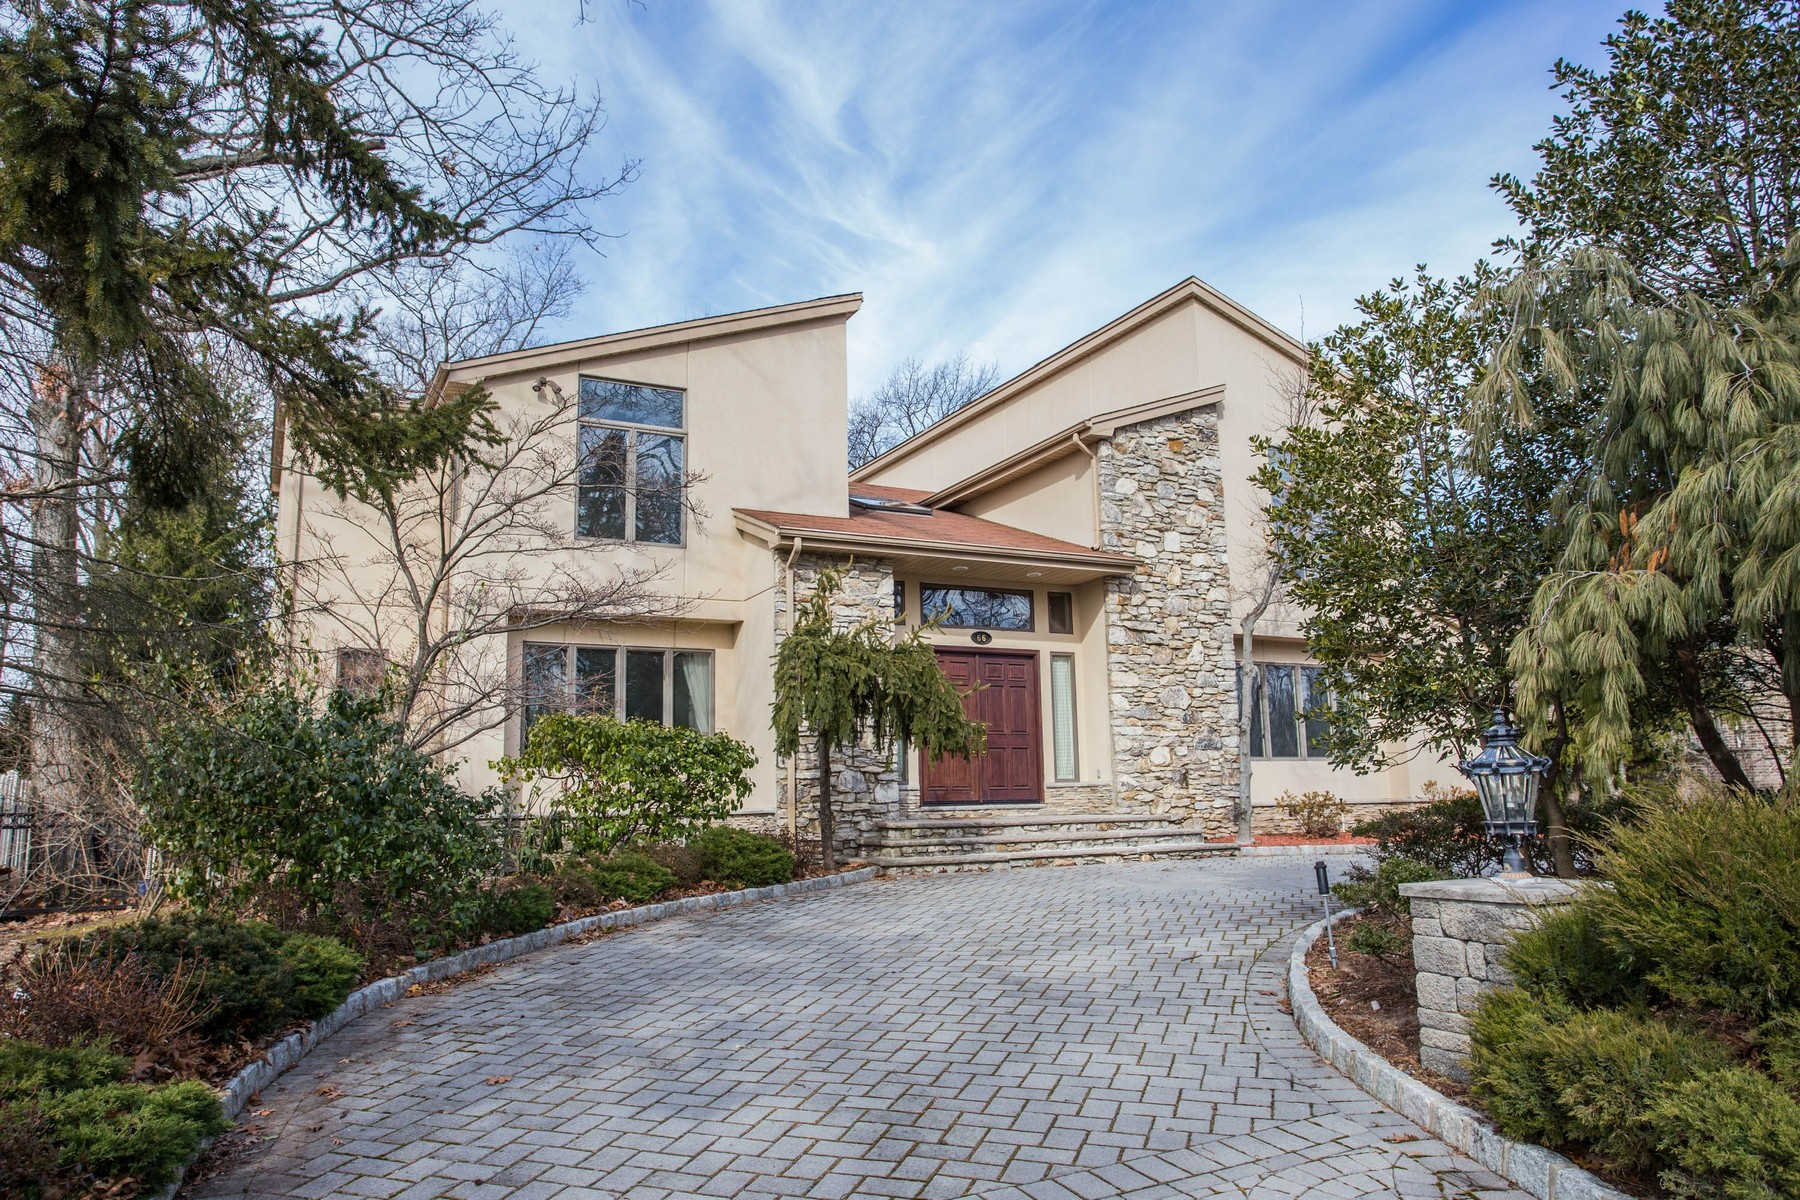 Single Family Home for Sale at Desirable Location In Englewood Cliffs 66 Roberts Road Englewood Cliffs, New Jersey, 07632 United States